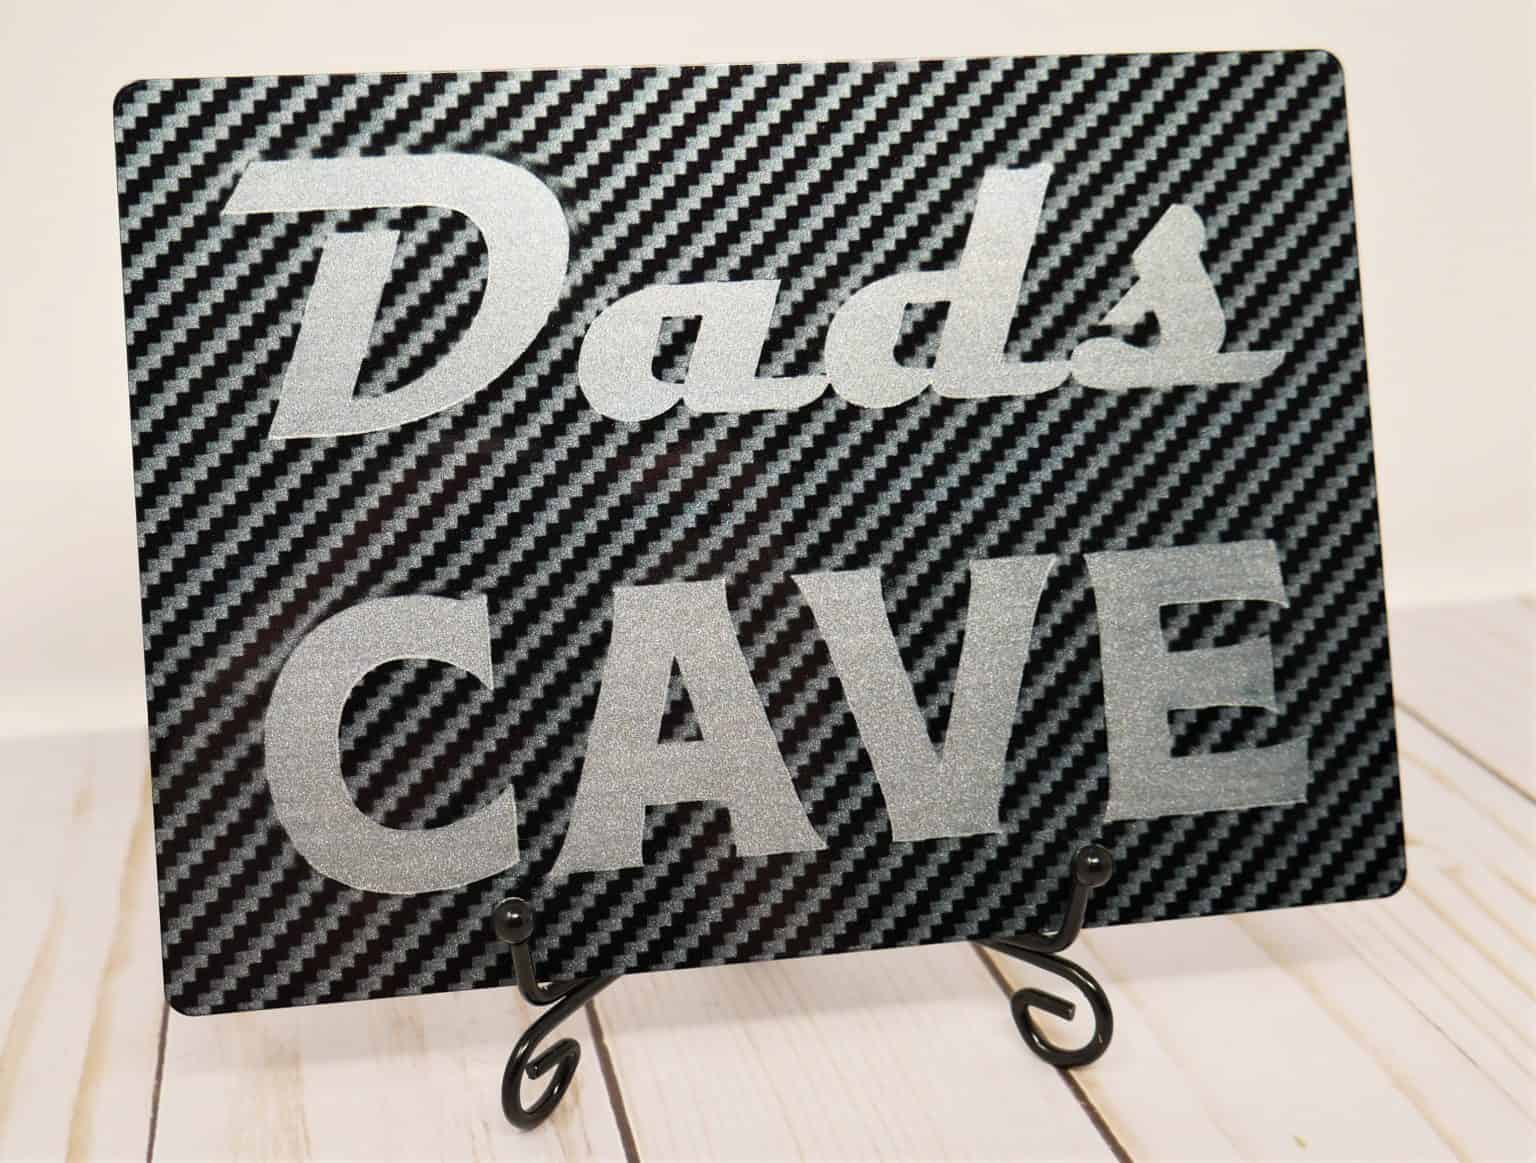 Dads Cave Design using Infusible Ink on Cricuts Aluminum Sheets.